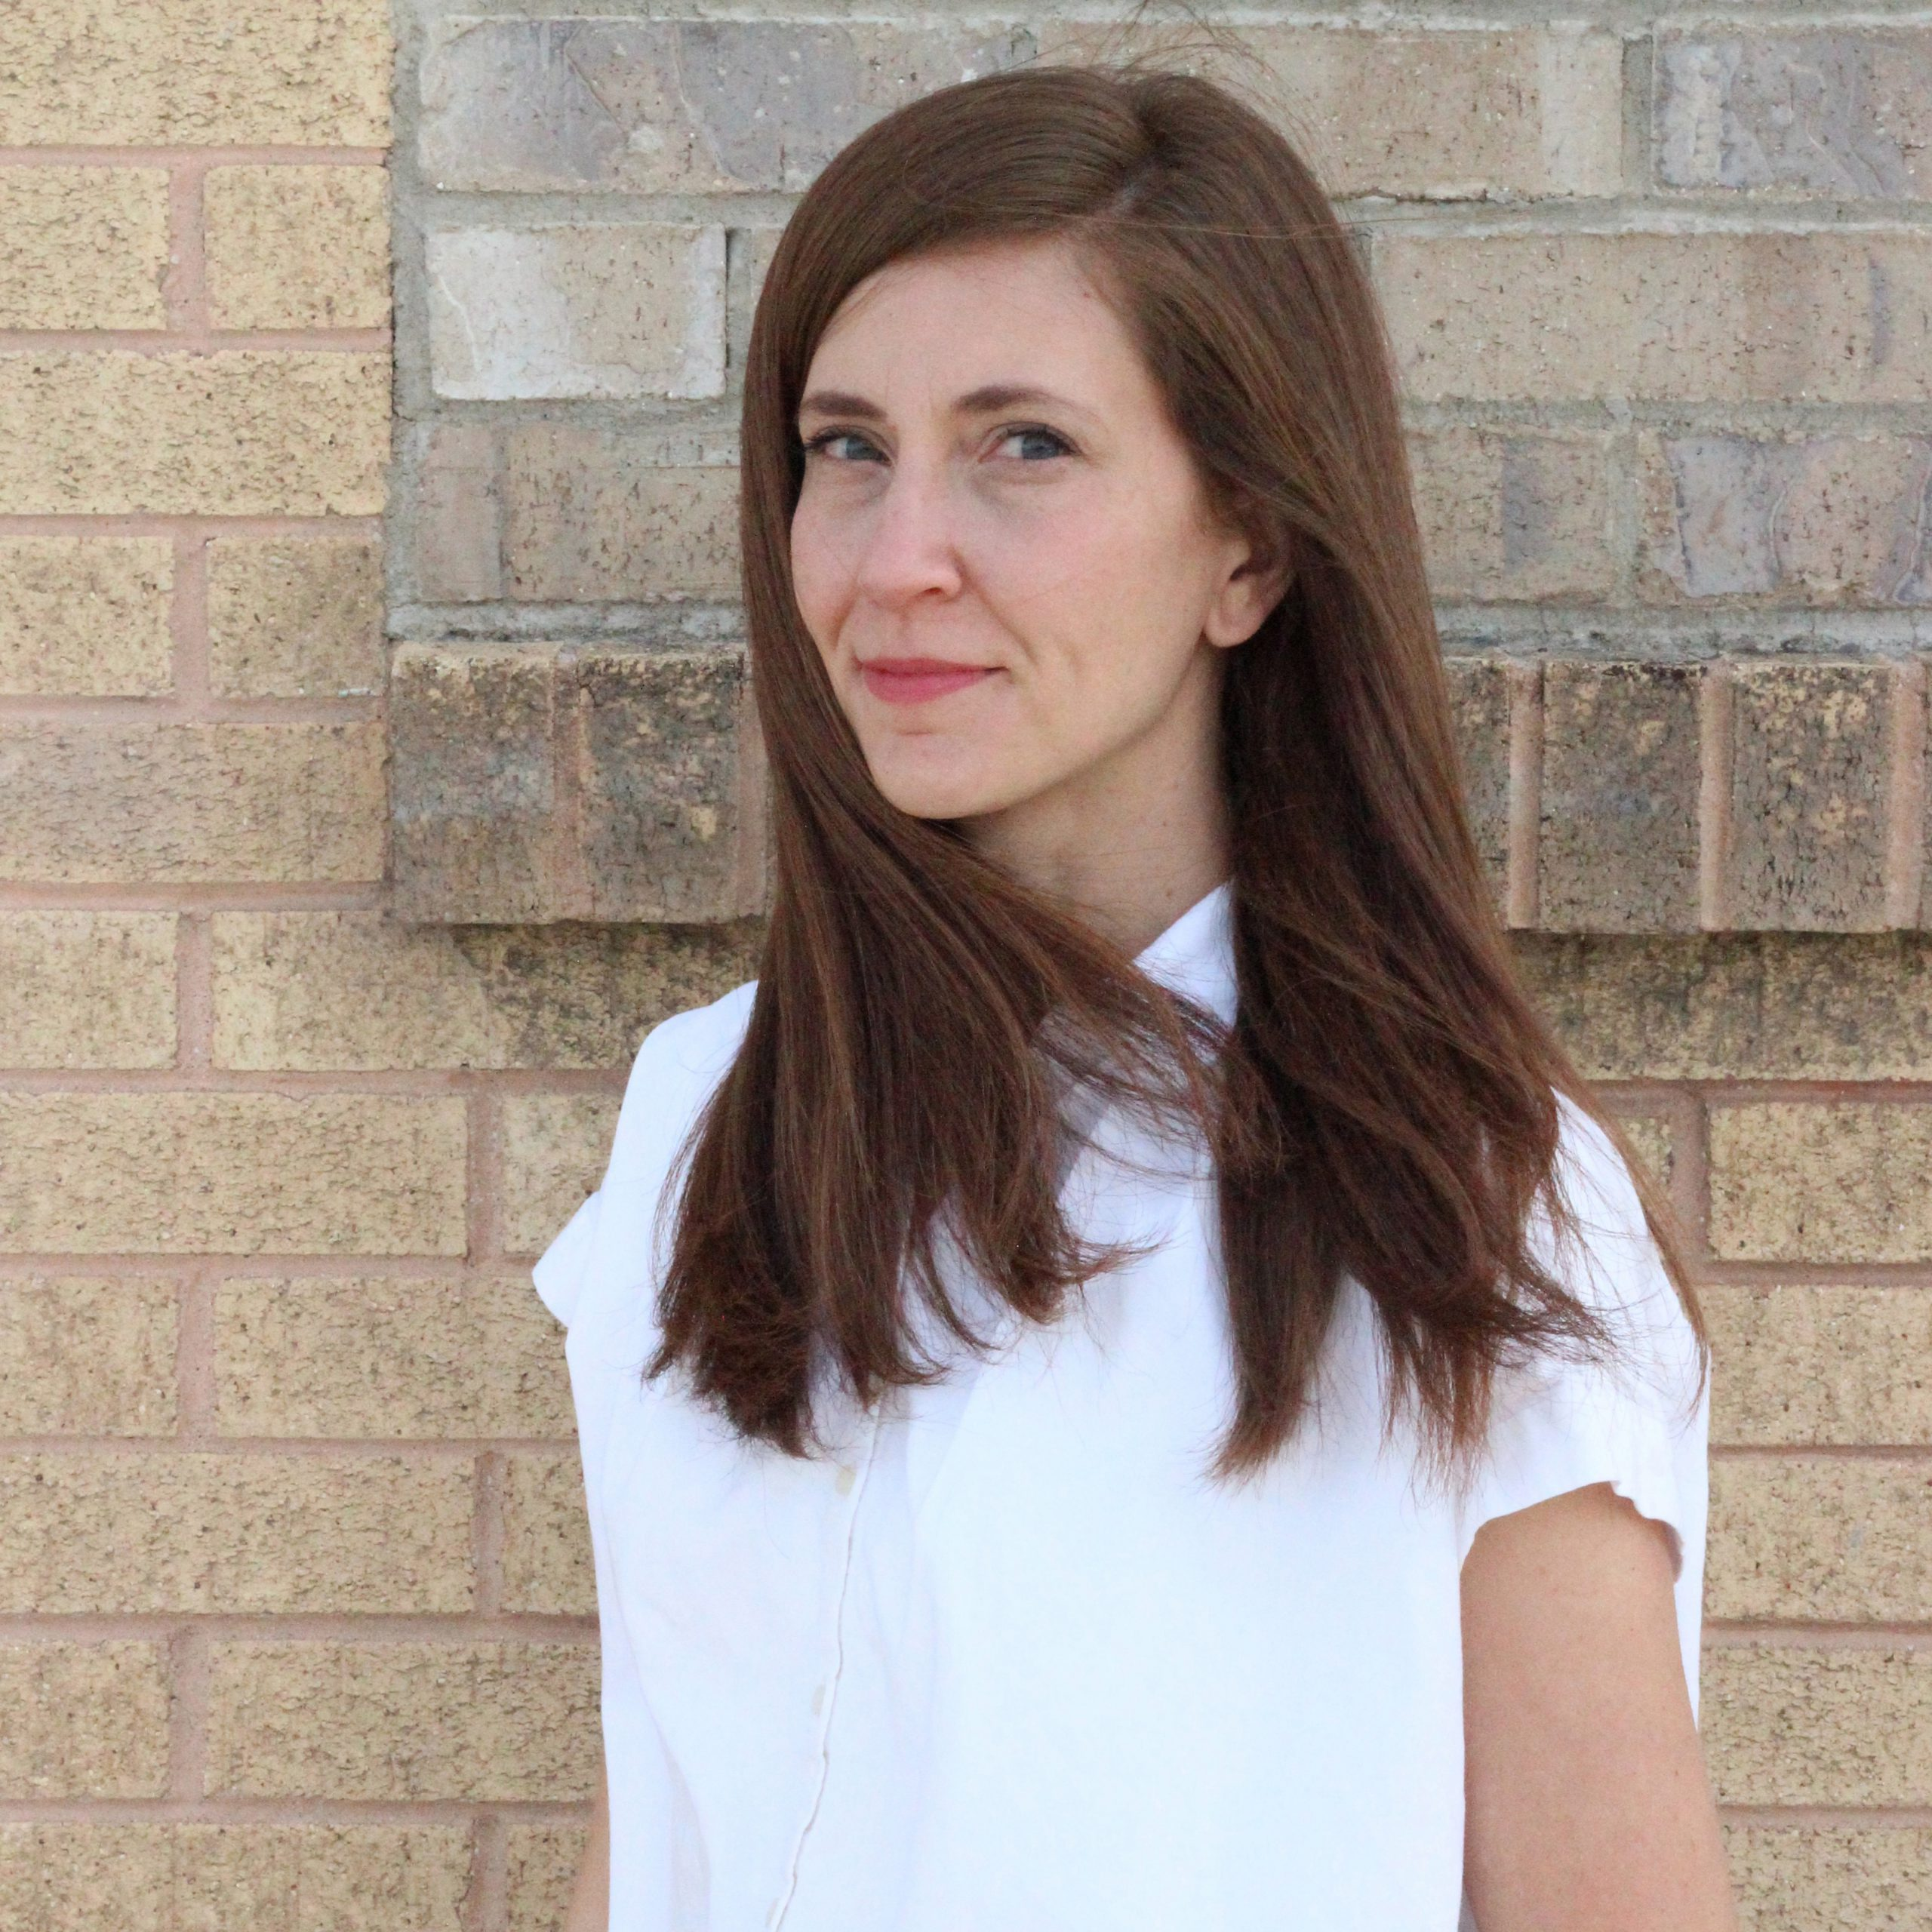 A photo fo a white woman with brown hair standing in front of a brown brick wall.